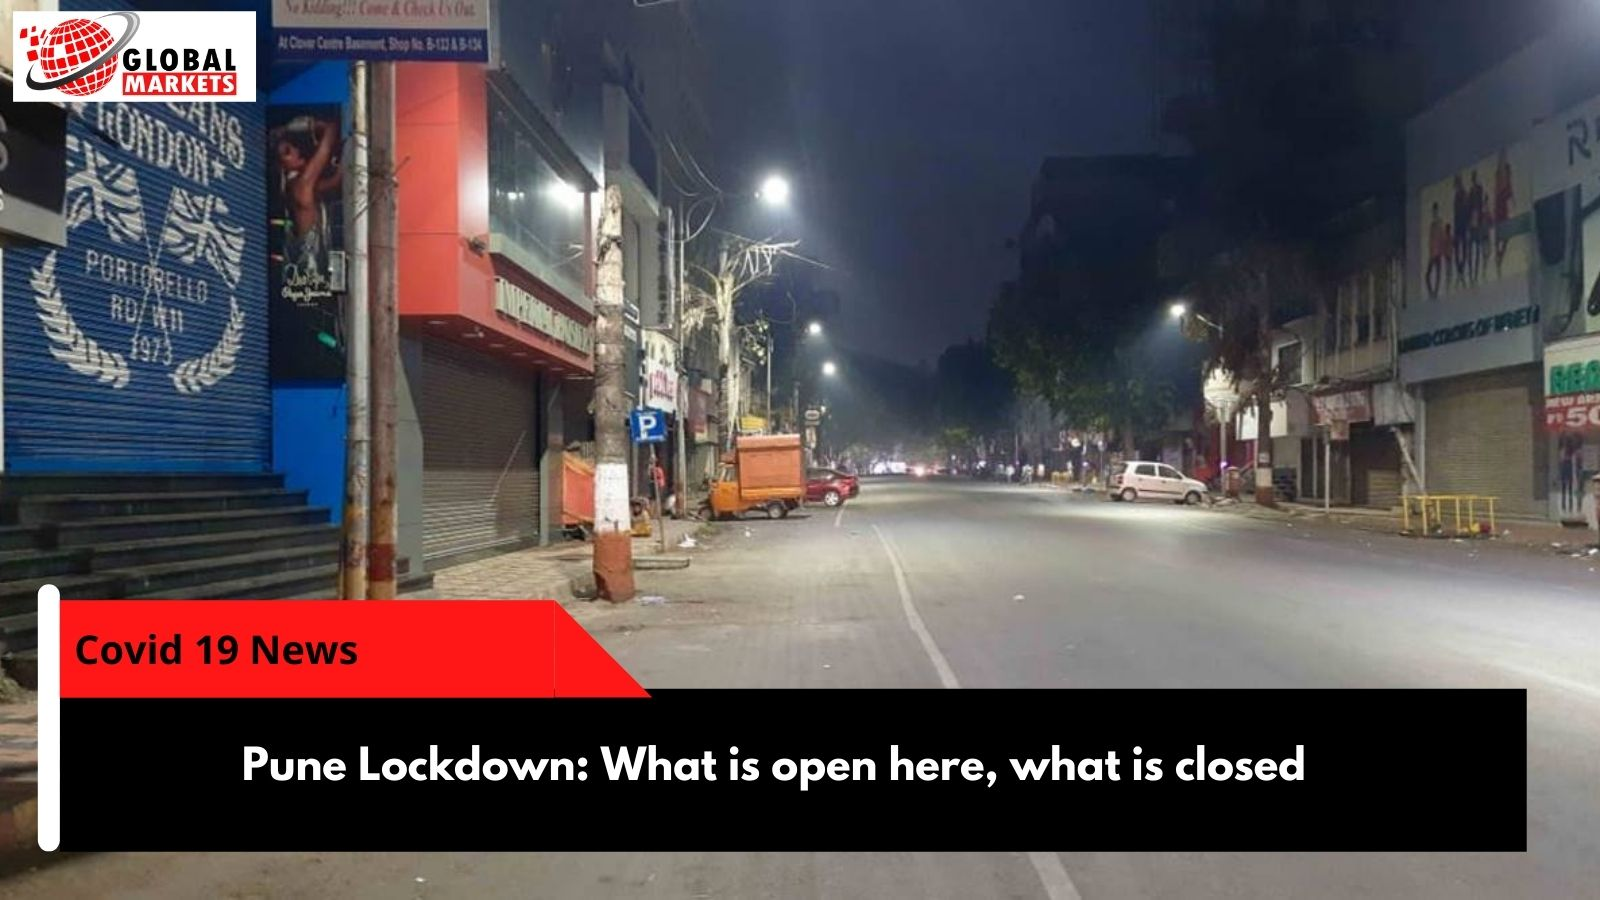 Pune Lockdown: What is open here, what is closed